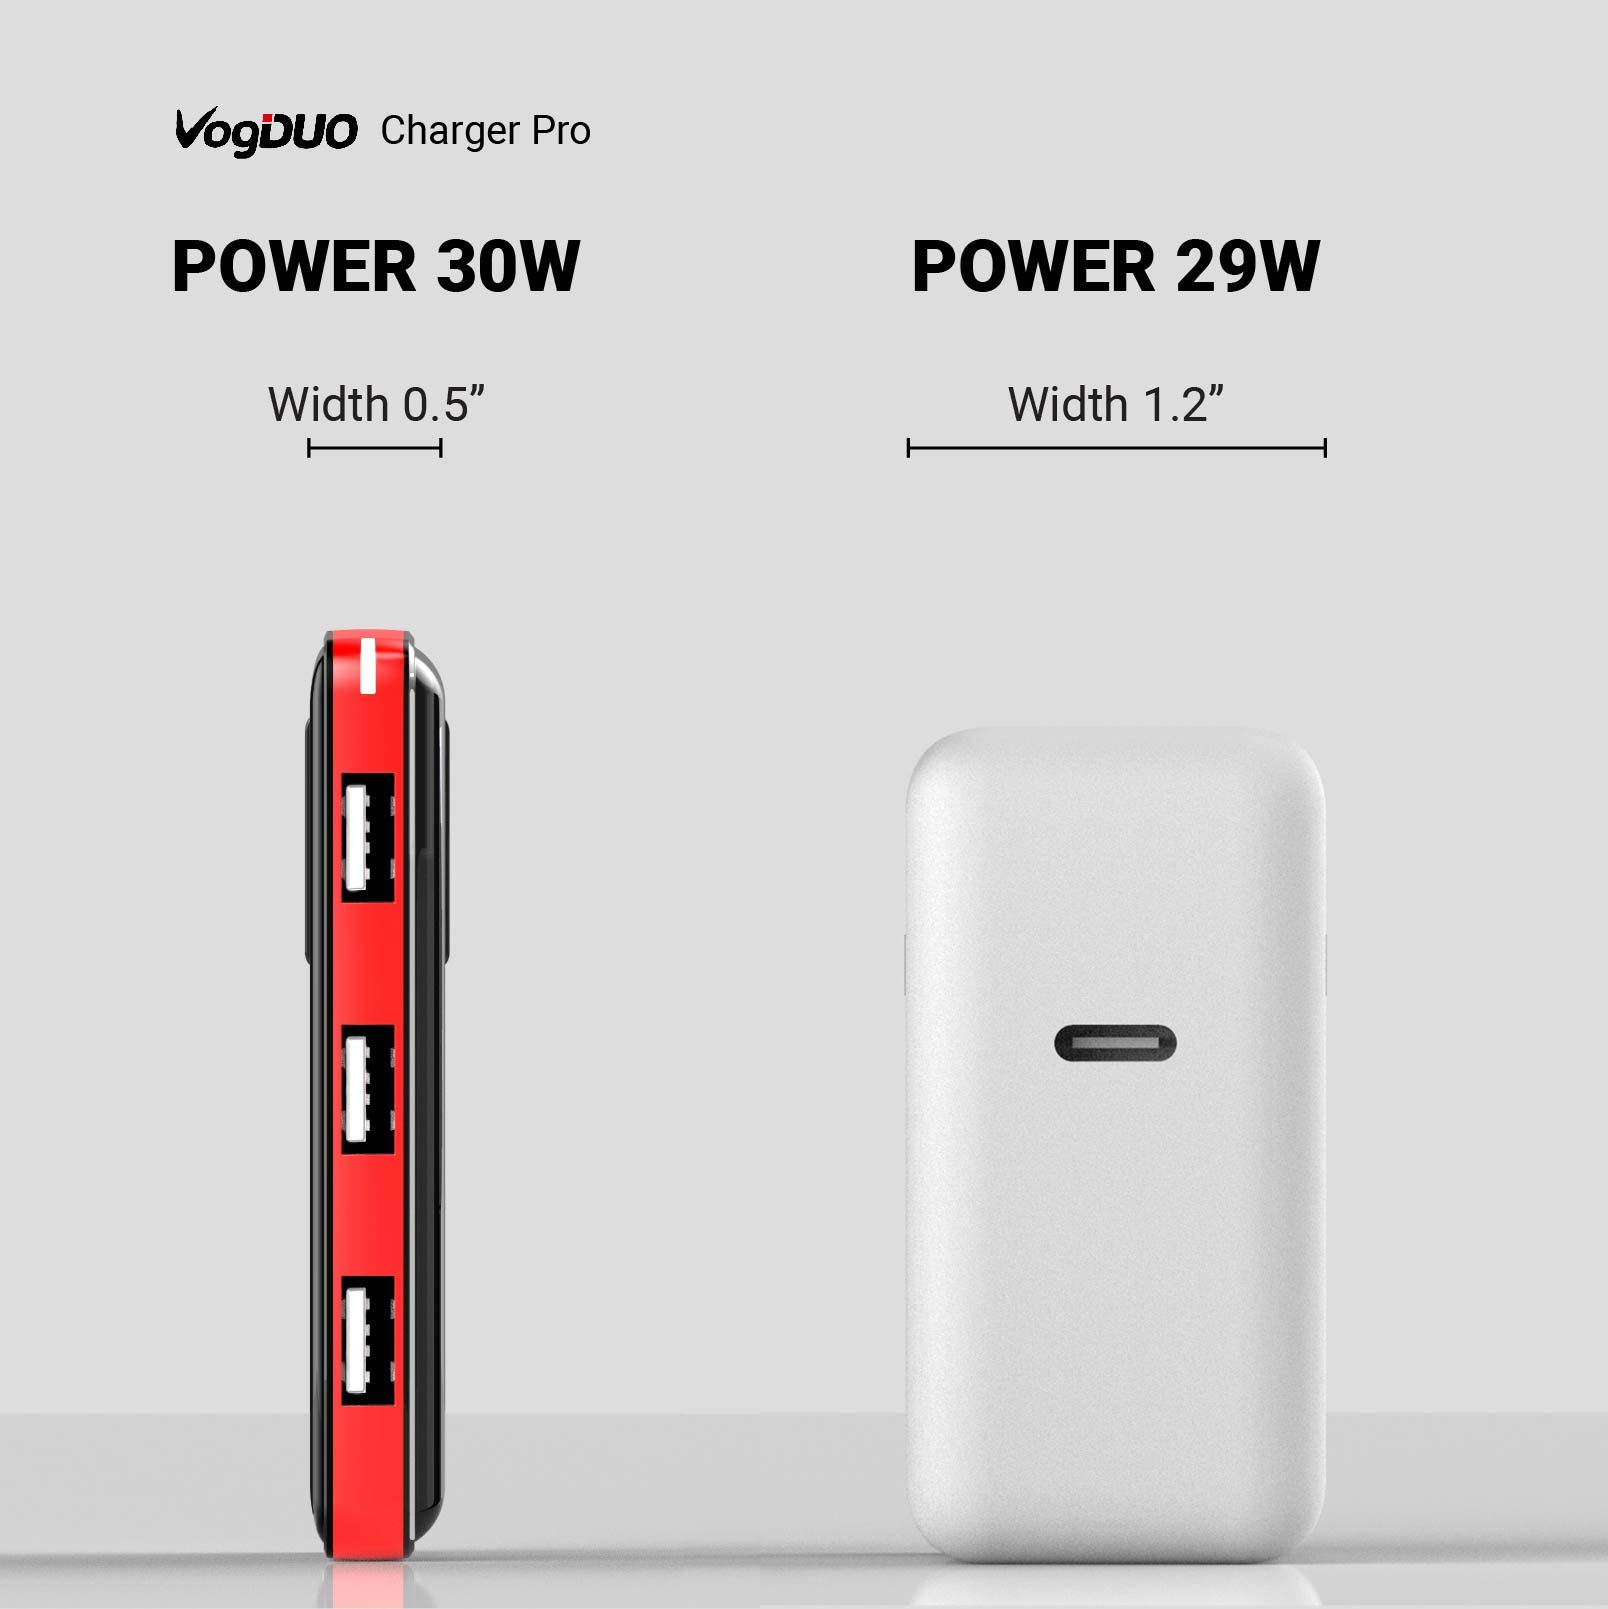 Charger Pro, 2-Pack Premium 3 Port USB Wall Charger, 30W 5V/6A, Slim Design, Foldable Plug for Multiple Apple iPhone X Xs Xr Xs Max, iPad, Android, Samsung Note 9, Black & Red (Gift Box) by VogDUO